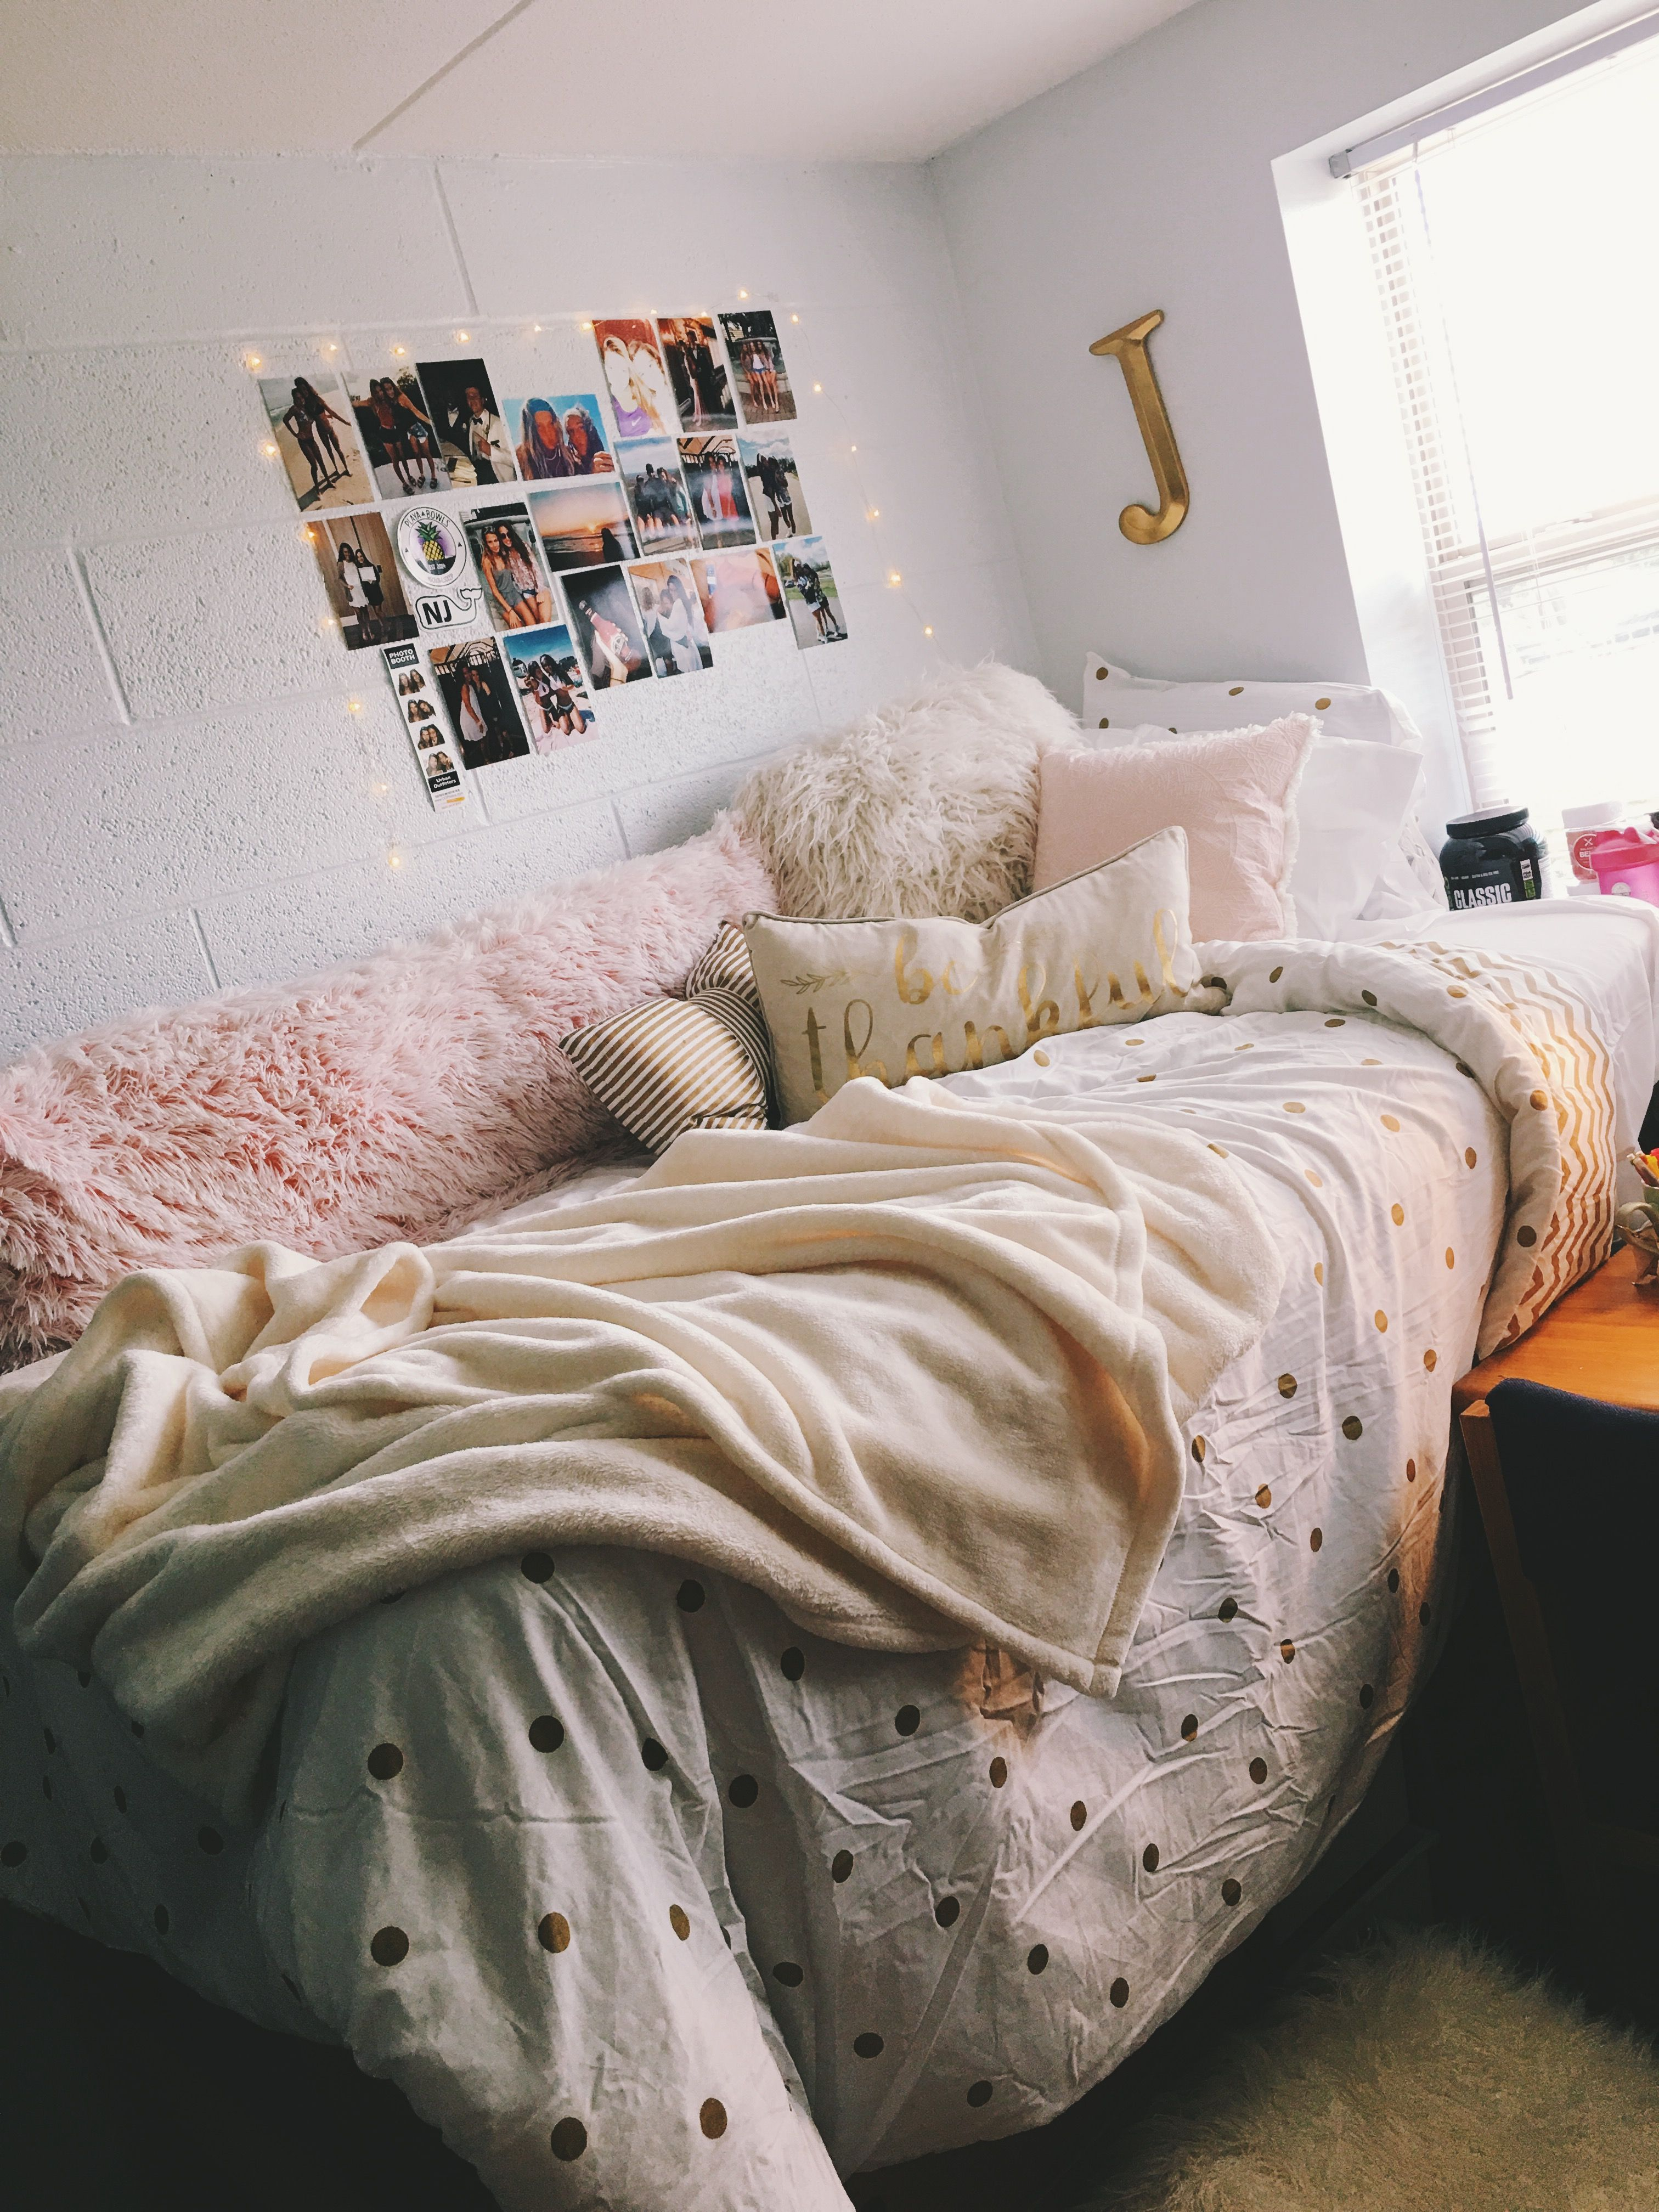 Pin By Kate Barlowe On A Weeee Bit Excited About College Dorm